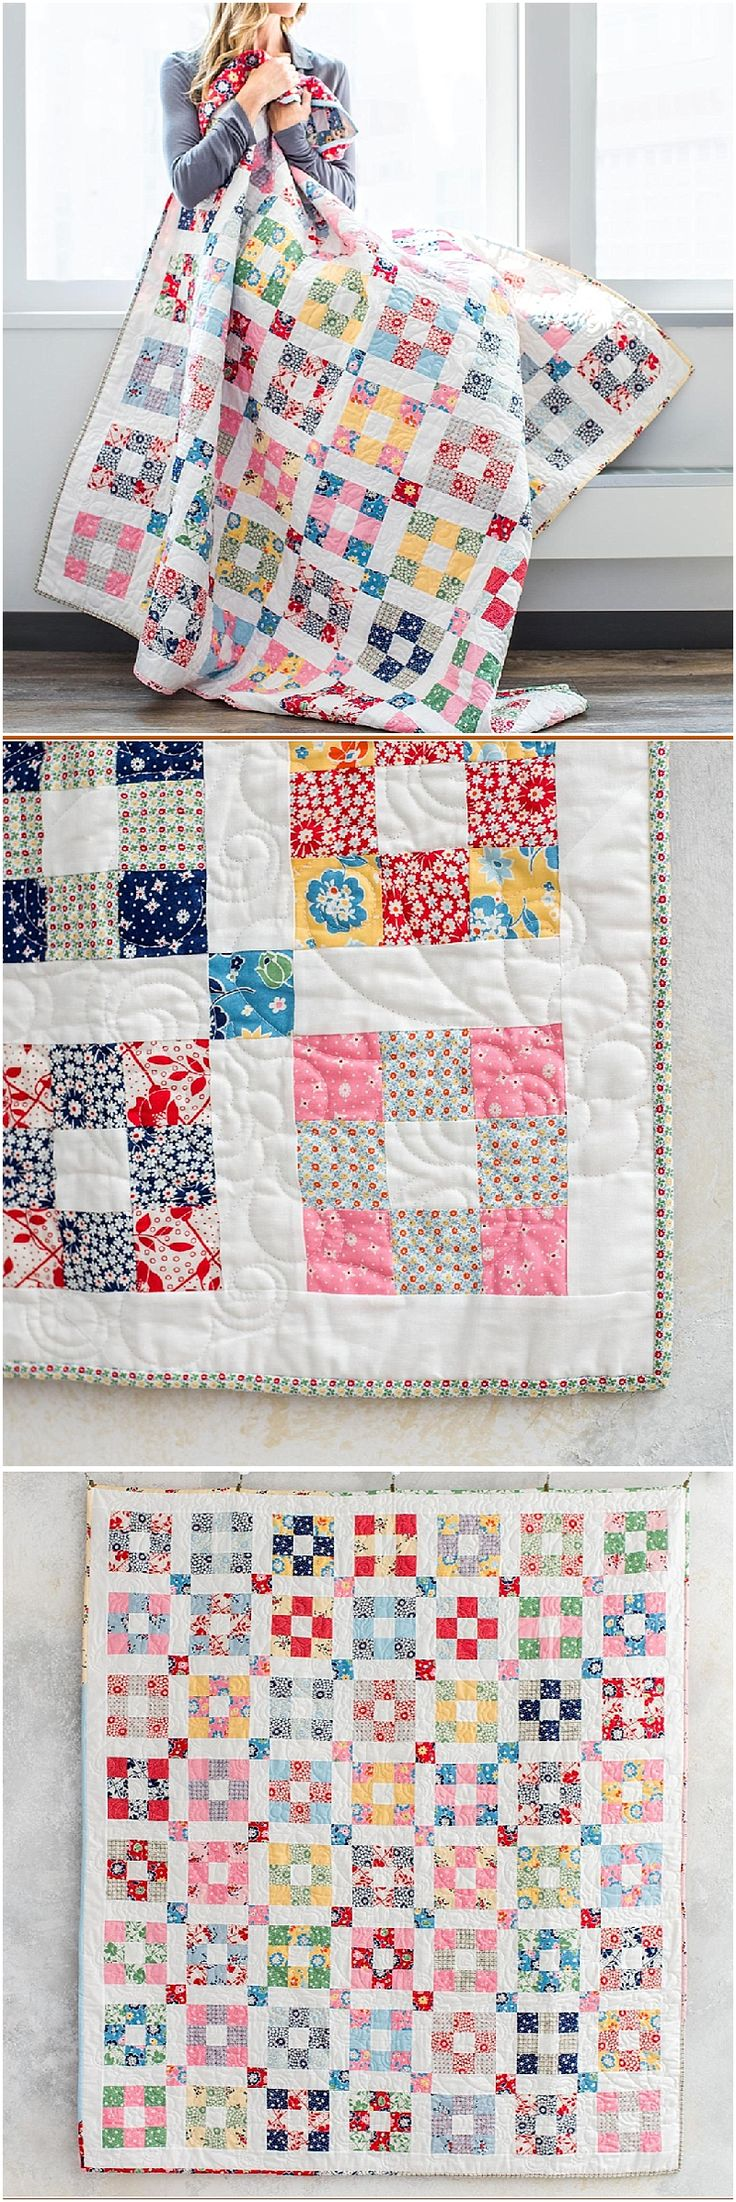 best Patchwork and Quilting images on Pinterest Applique